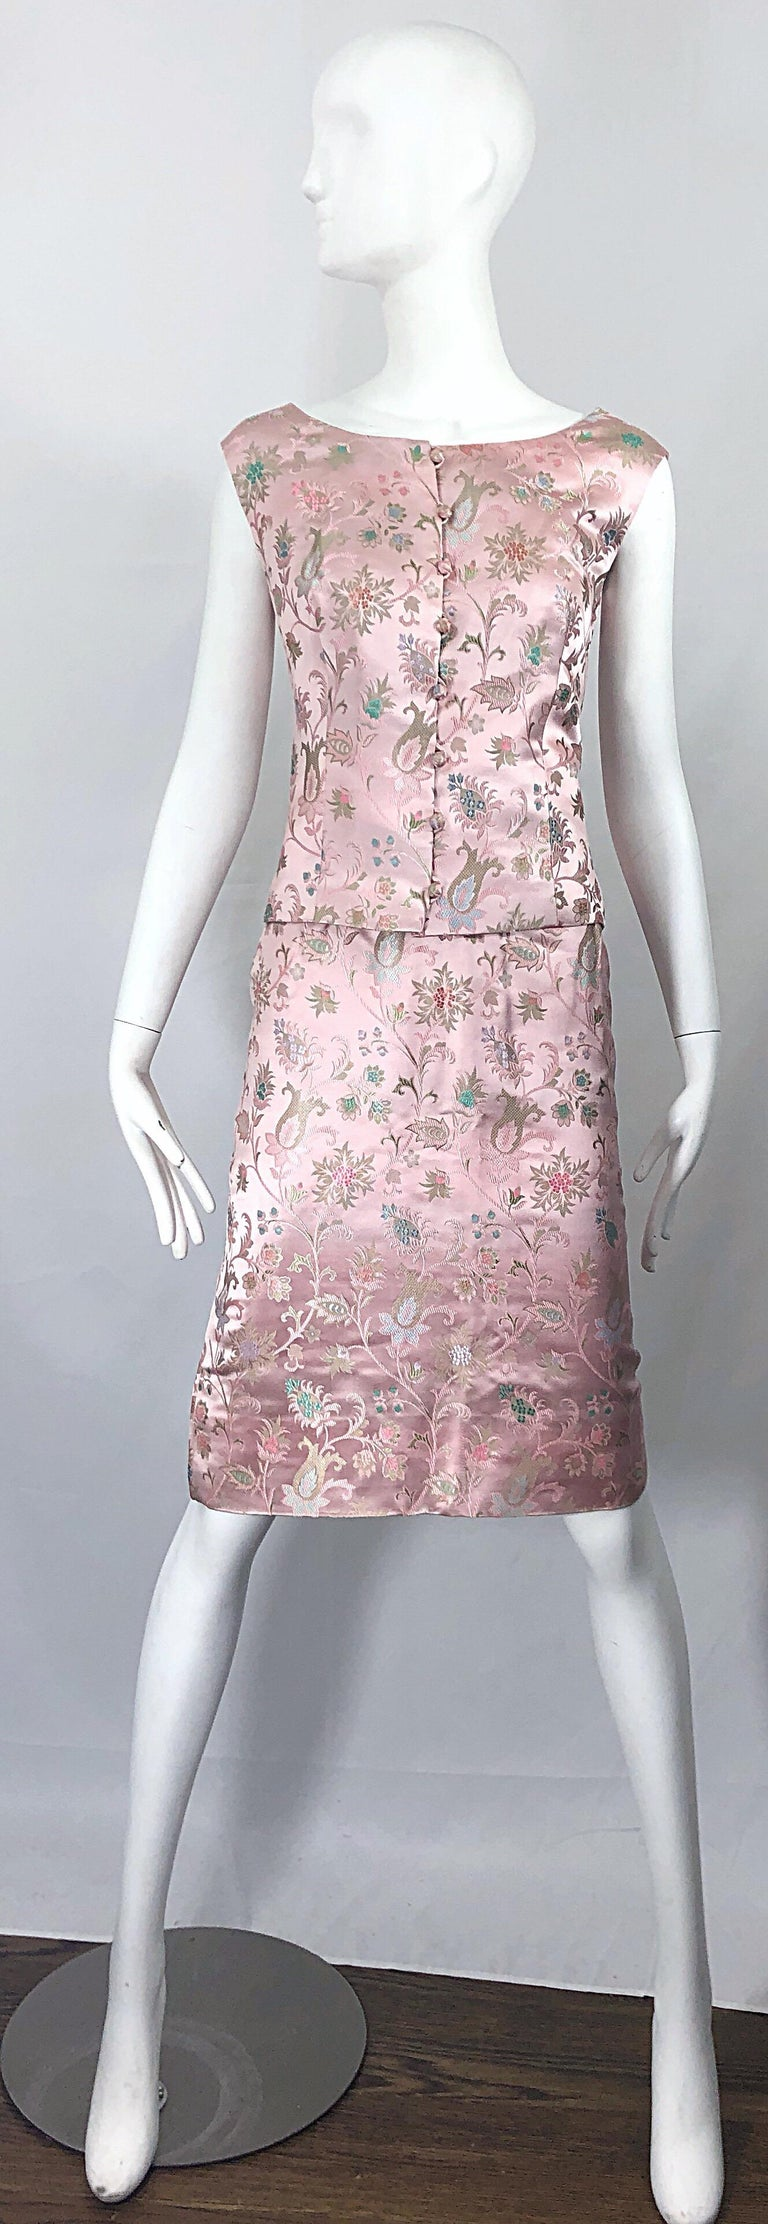 Utterly chic vintage 60s DYNASTY 3 piece light pink silk dress ensemble! The most beautiful light pink silk with intricate embrodiery in blues, greens, pinks and lavender purple throughout.  Features a sleeveless top that buttons up the front.